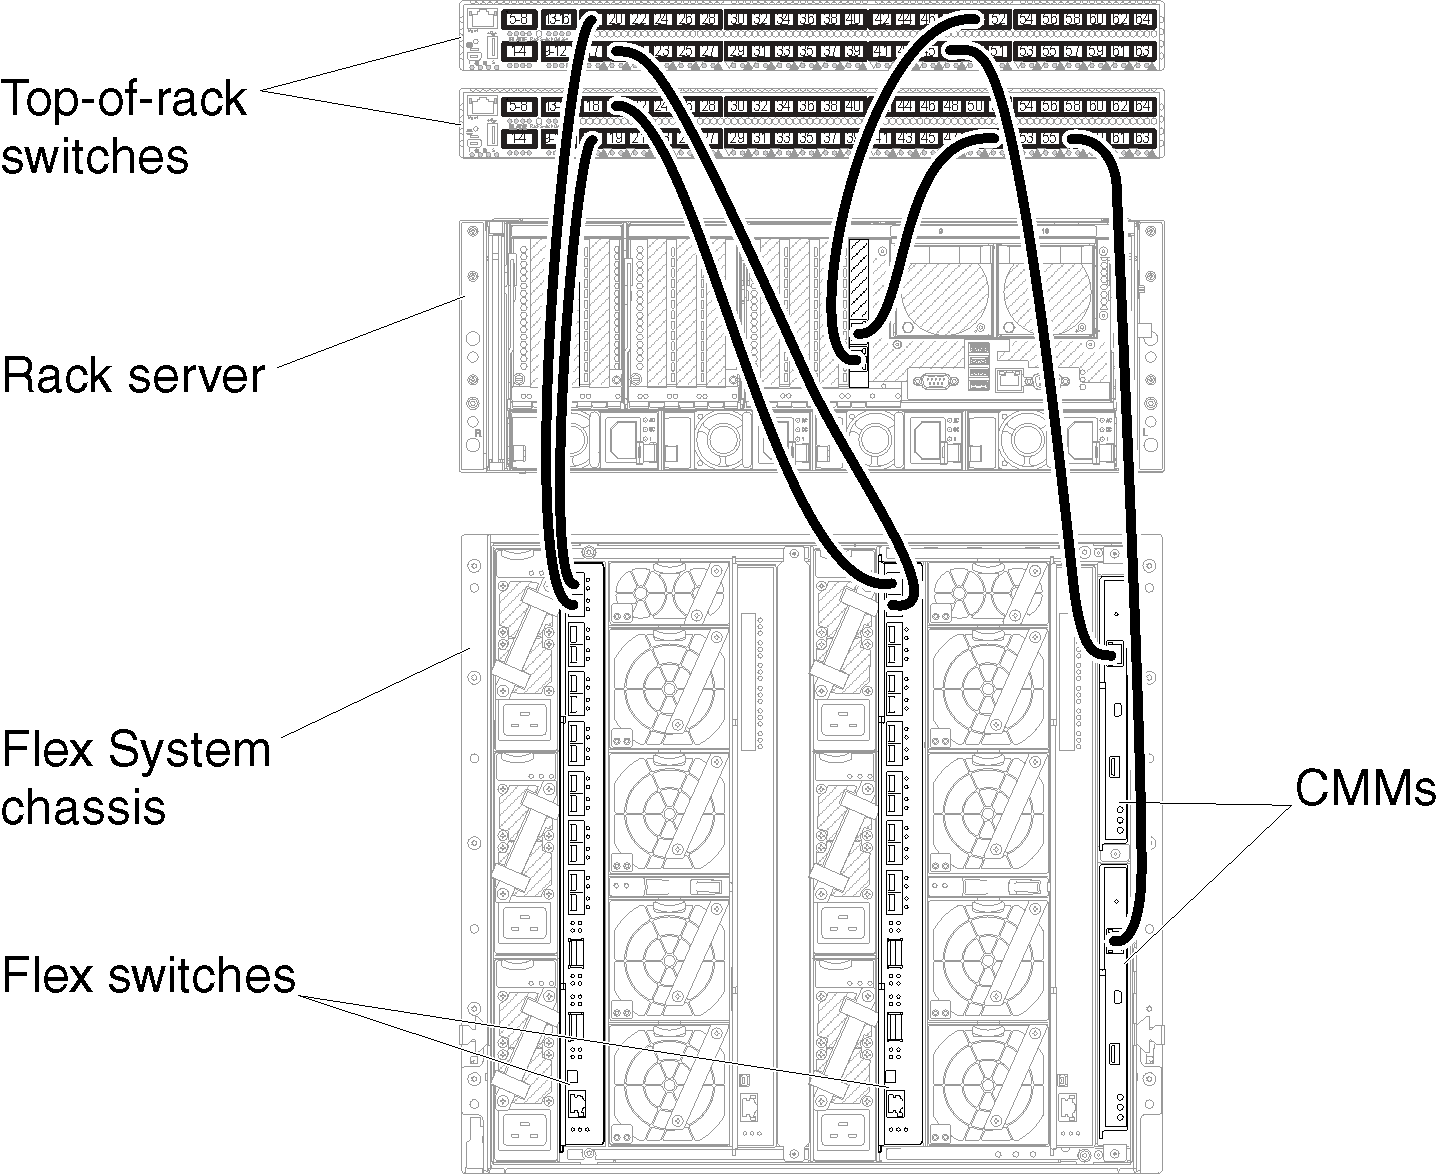 Cabling the chassis and rack servers to the top-of-rack